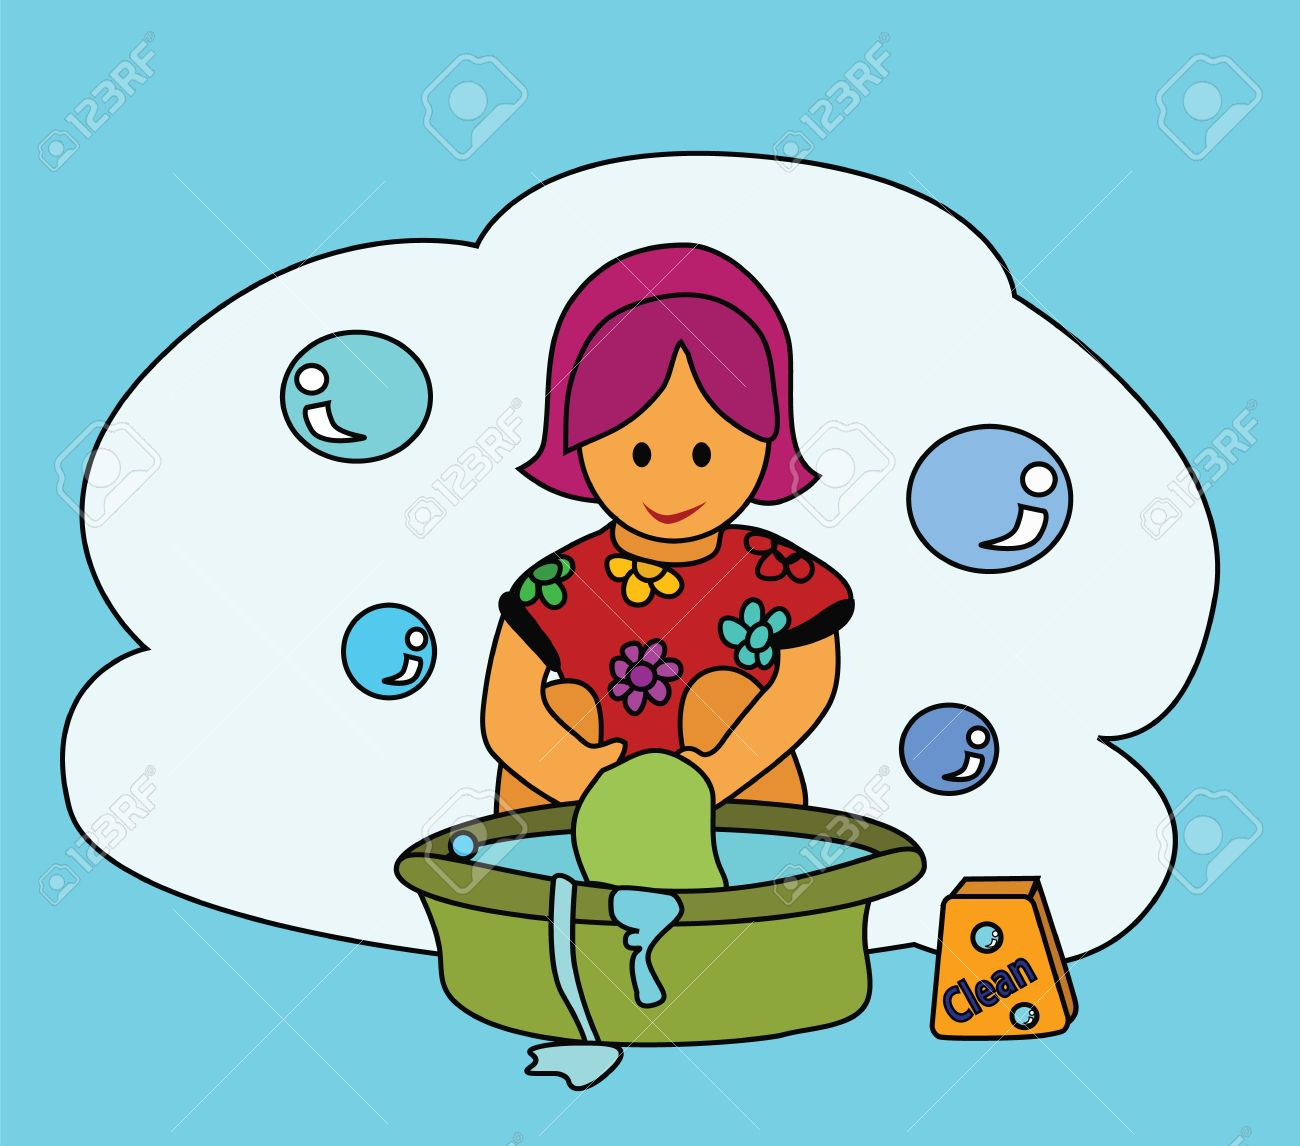 Washing clothes by hand clipart 11 » Clipart Station.